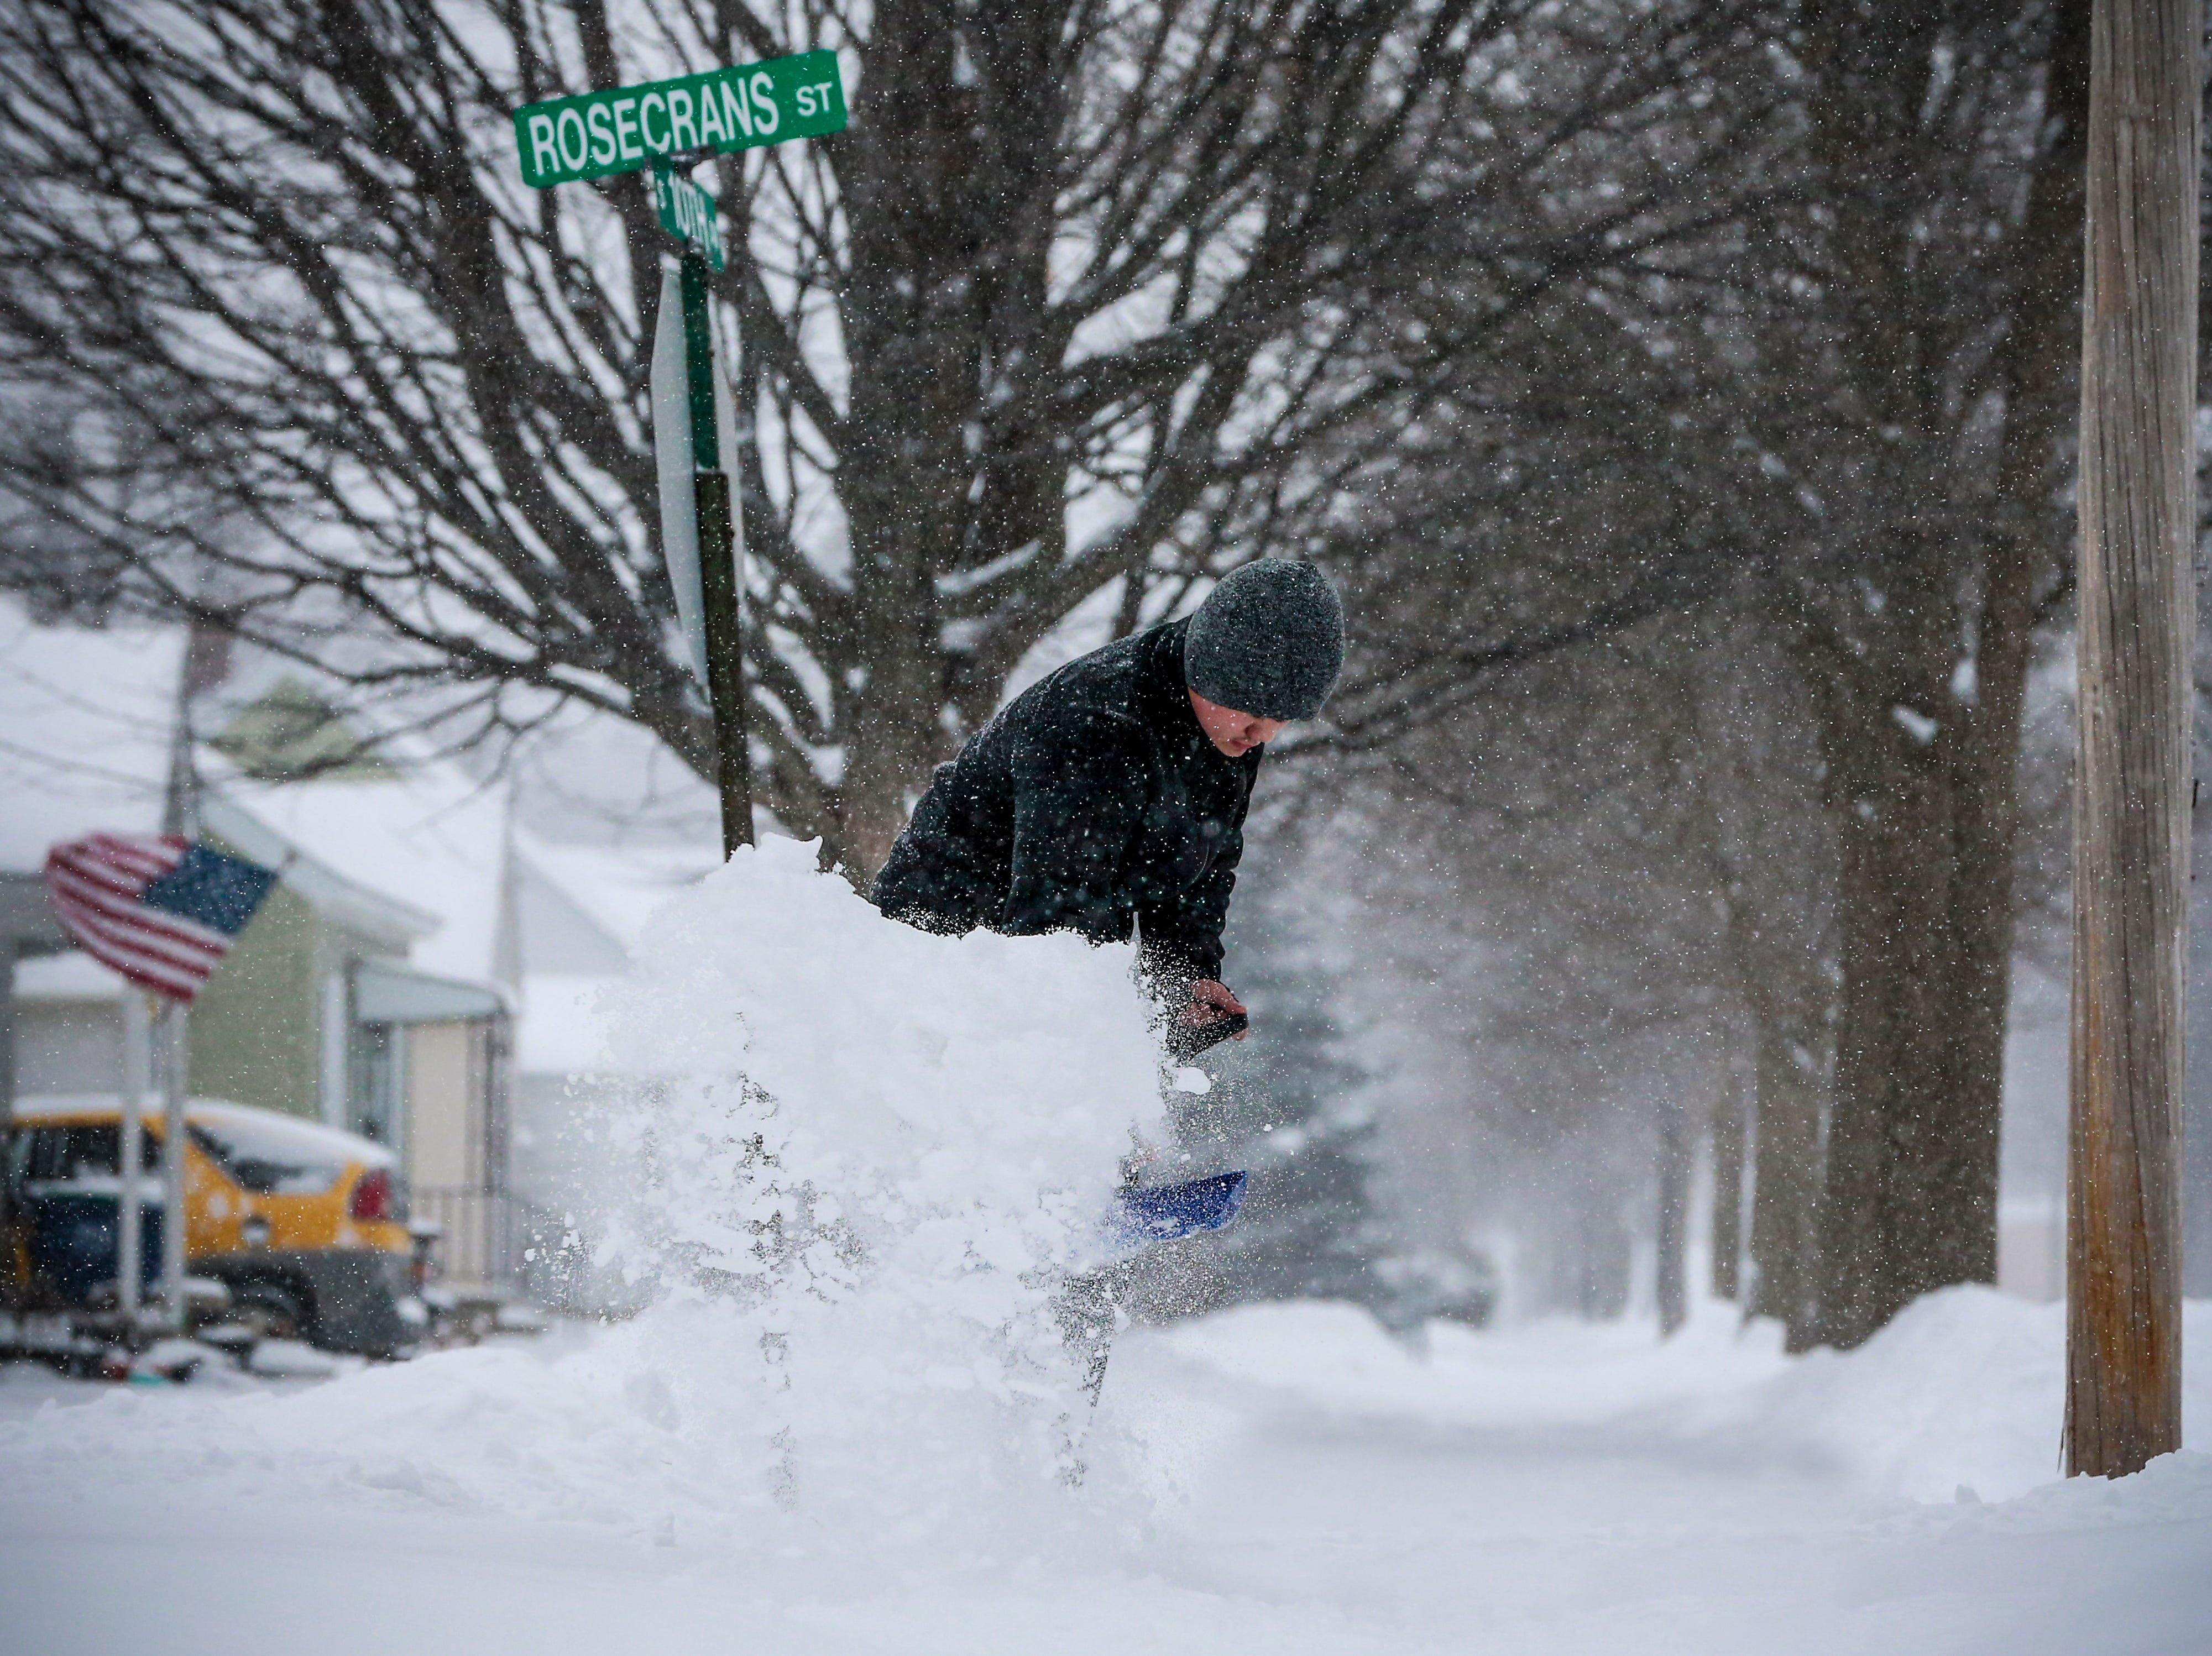 Fong Her shoves snow off his sidewalk after a snowstorm Monday, Jan. 28, 2019, in Wausau, Wis.